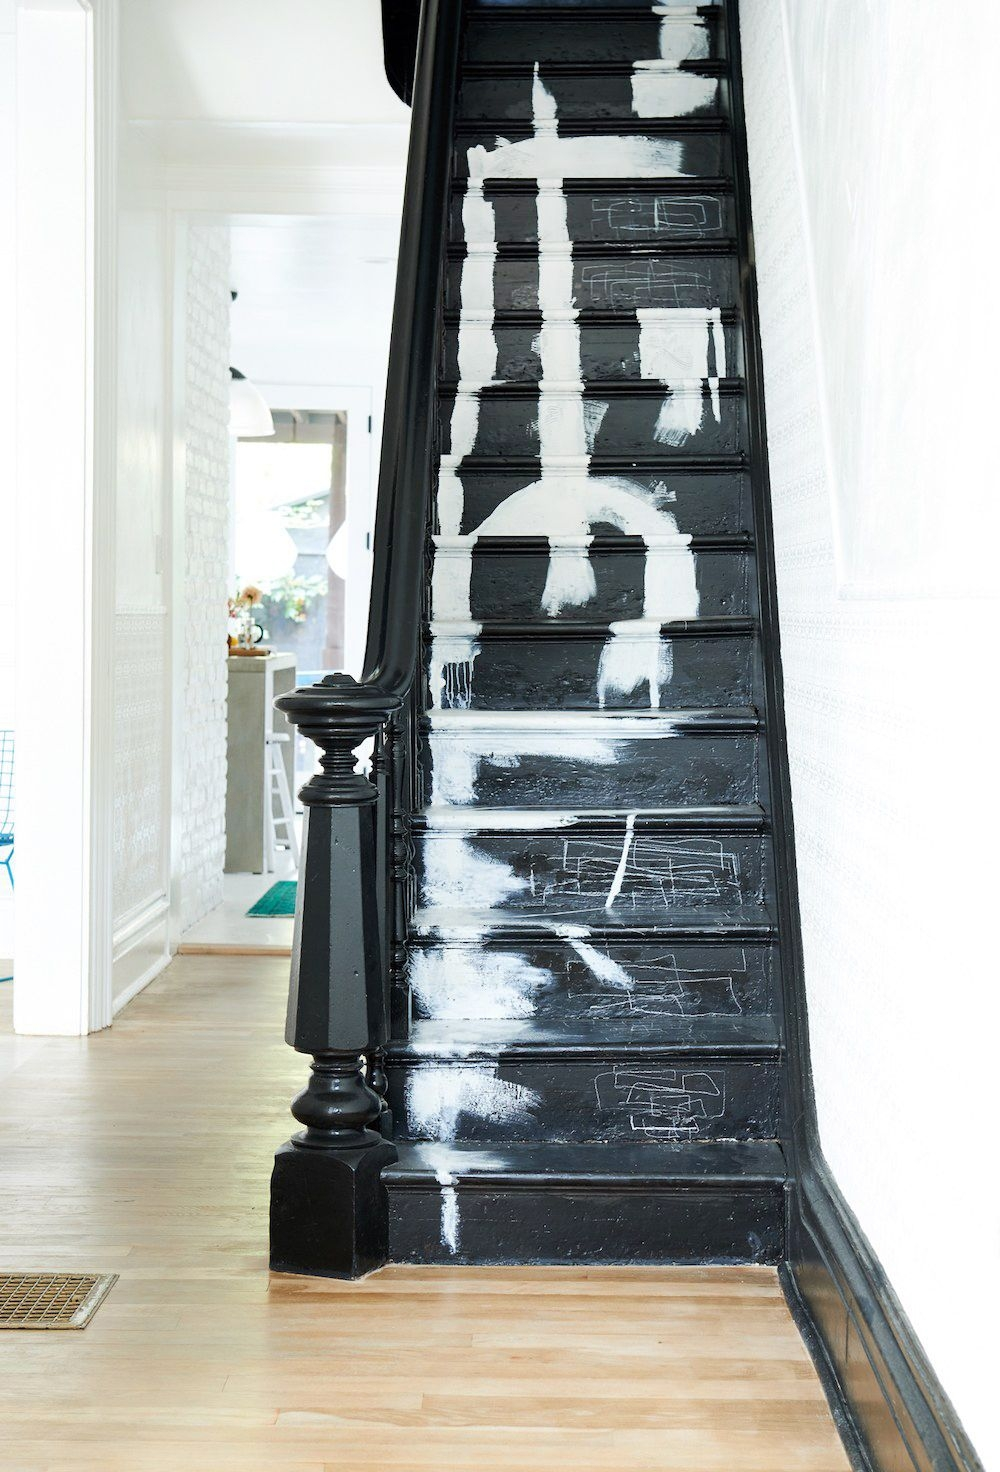 25 Unique Stair Designs Beautiful Stair Ideas For Your House | Wooden Staircases For Sale | Cheap | Steel | Landing | House | New Model